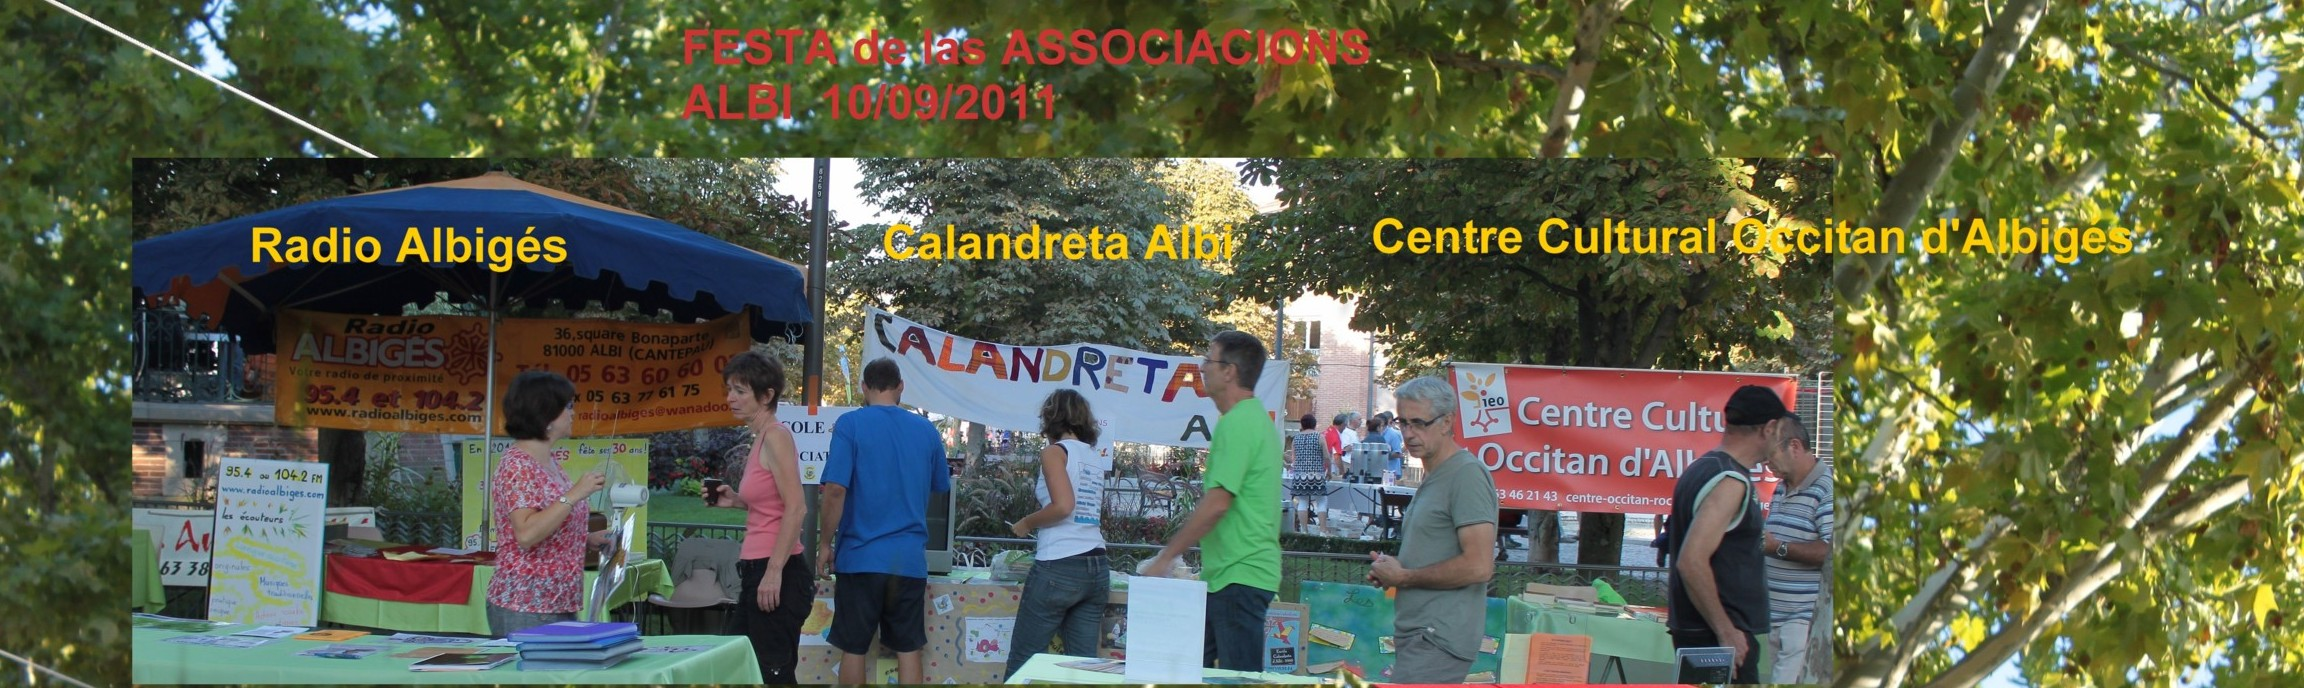 Fête des Associations, Albi, Septembre 2011